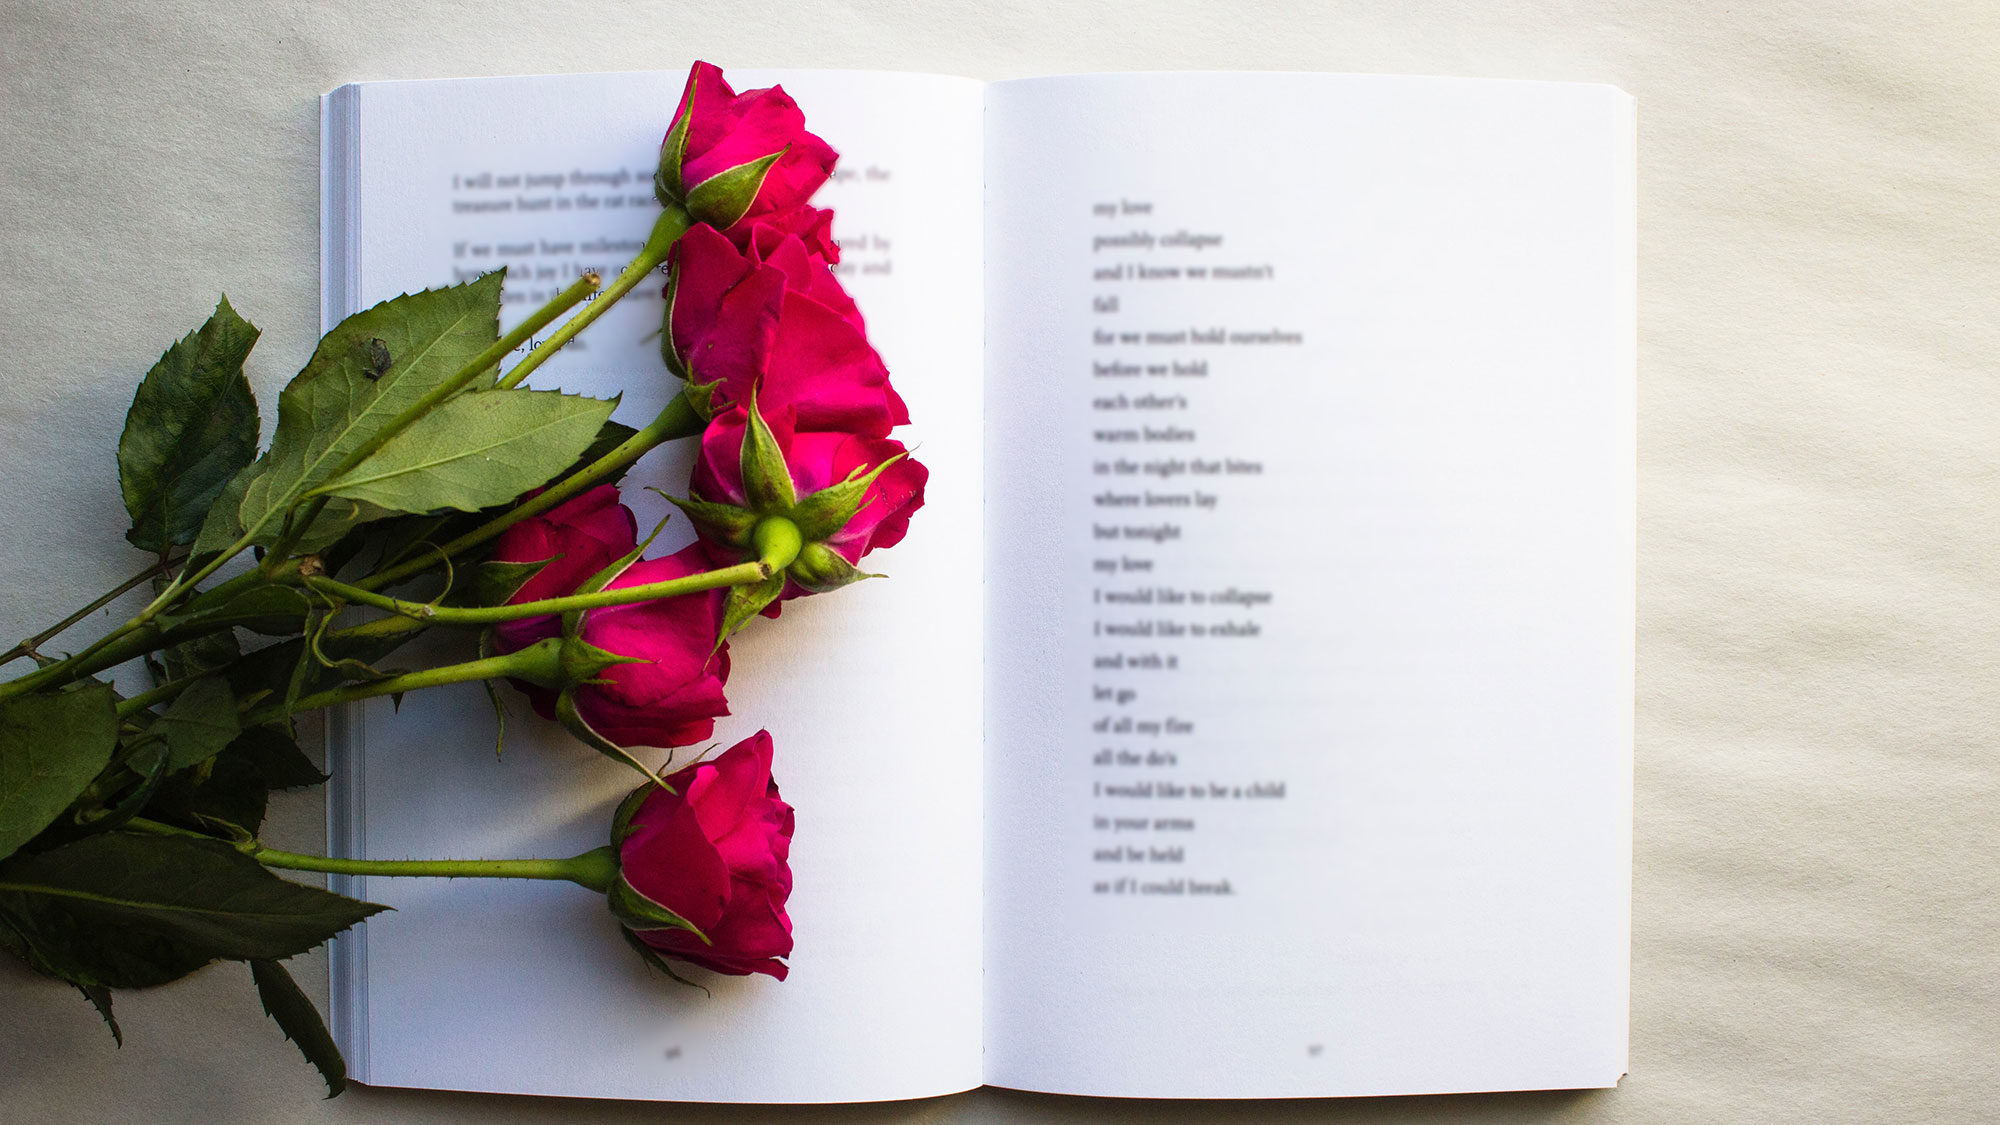 An open book lies flat on a table with the page opened to a poem as red roses lie on the book's page.